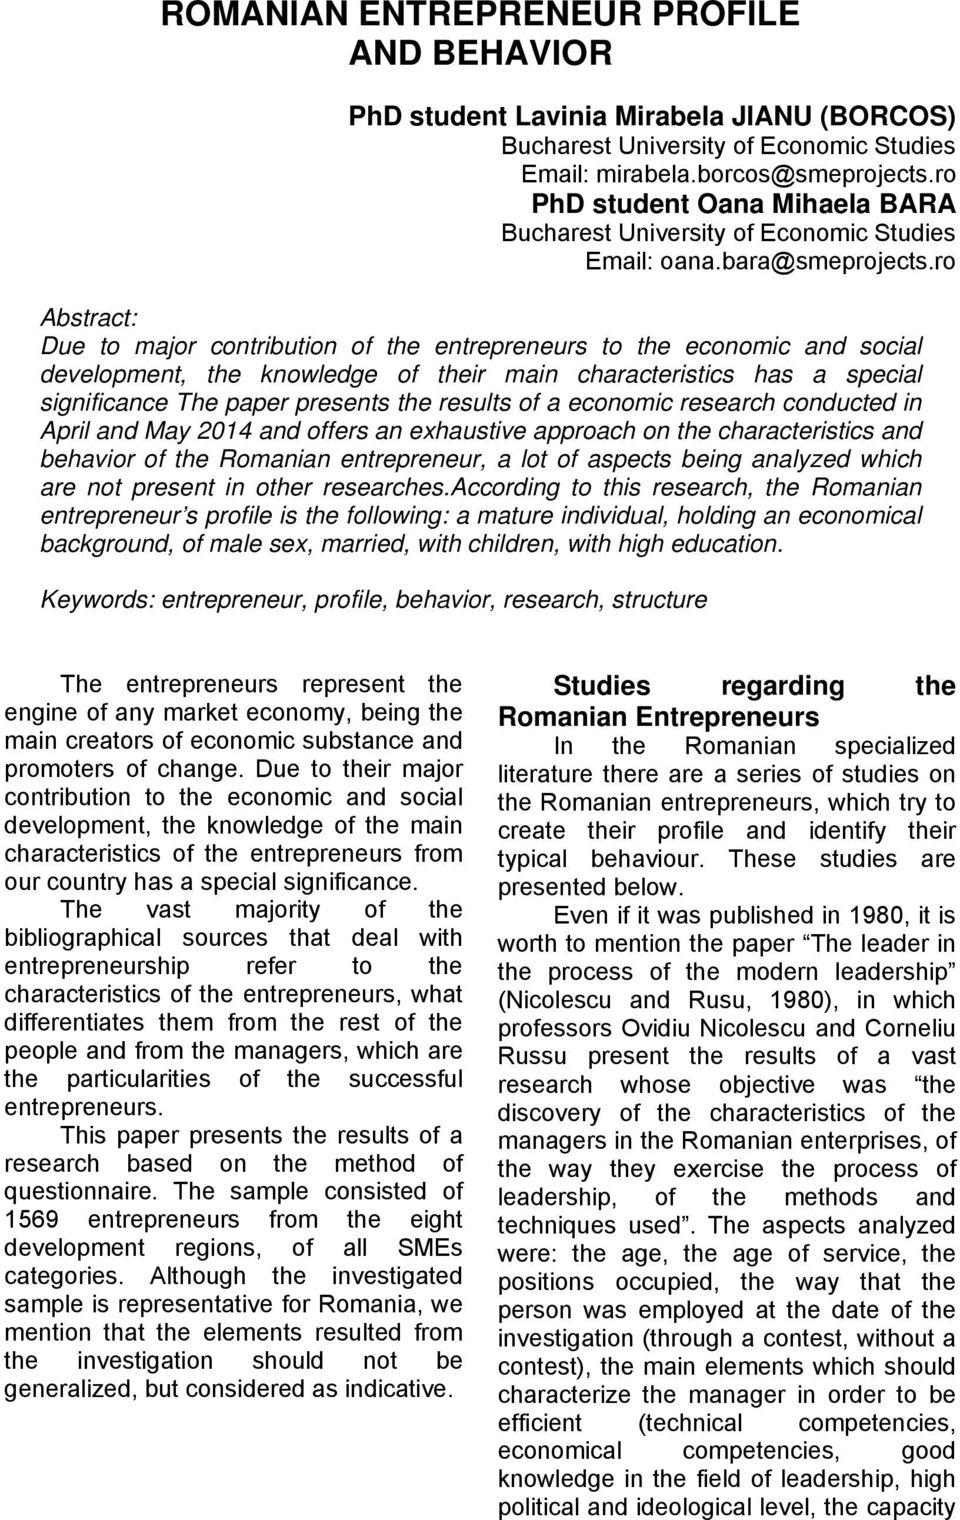 ro Abstract: Due to major contribution of the entrepreneurs to the economic and social development, the knowledge of their main characteristics has a special significance The paper presents the